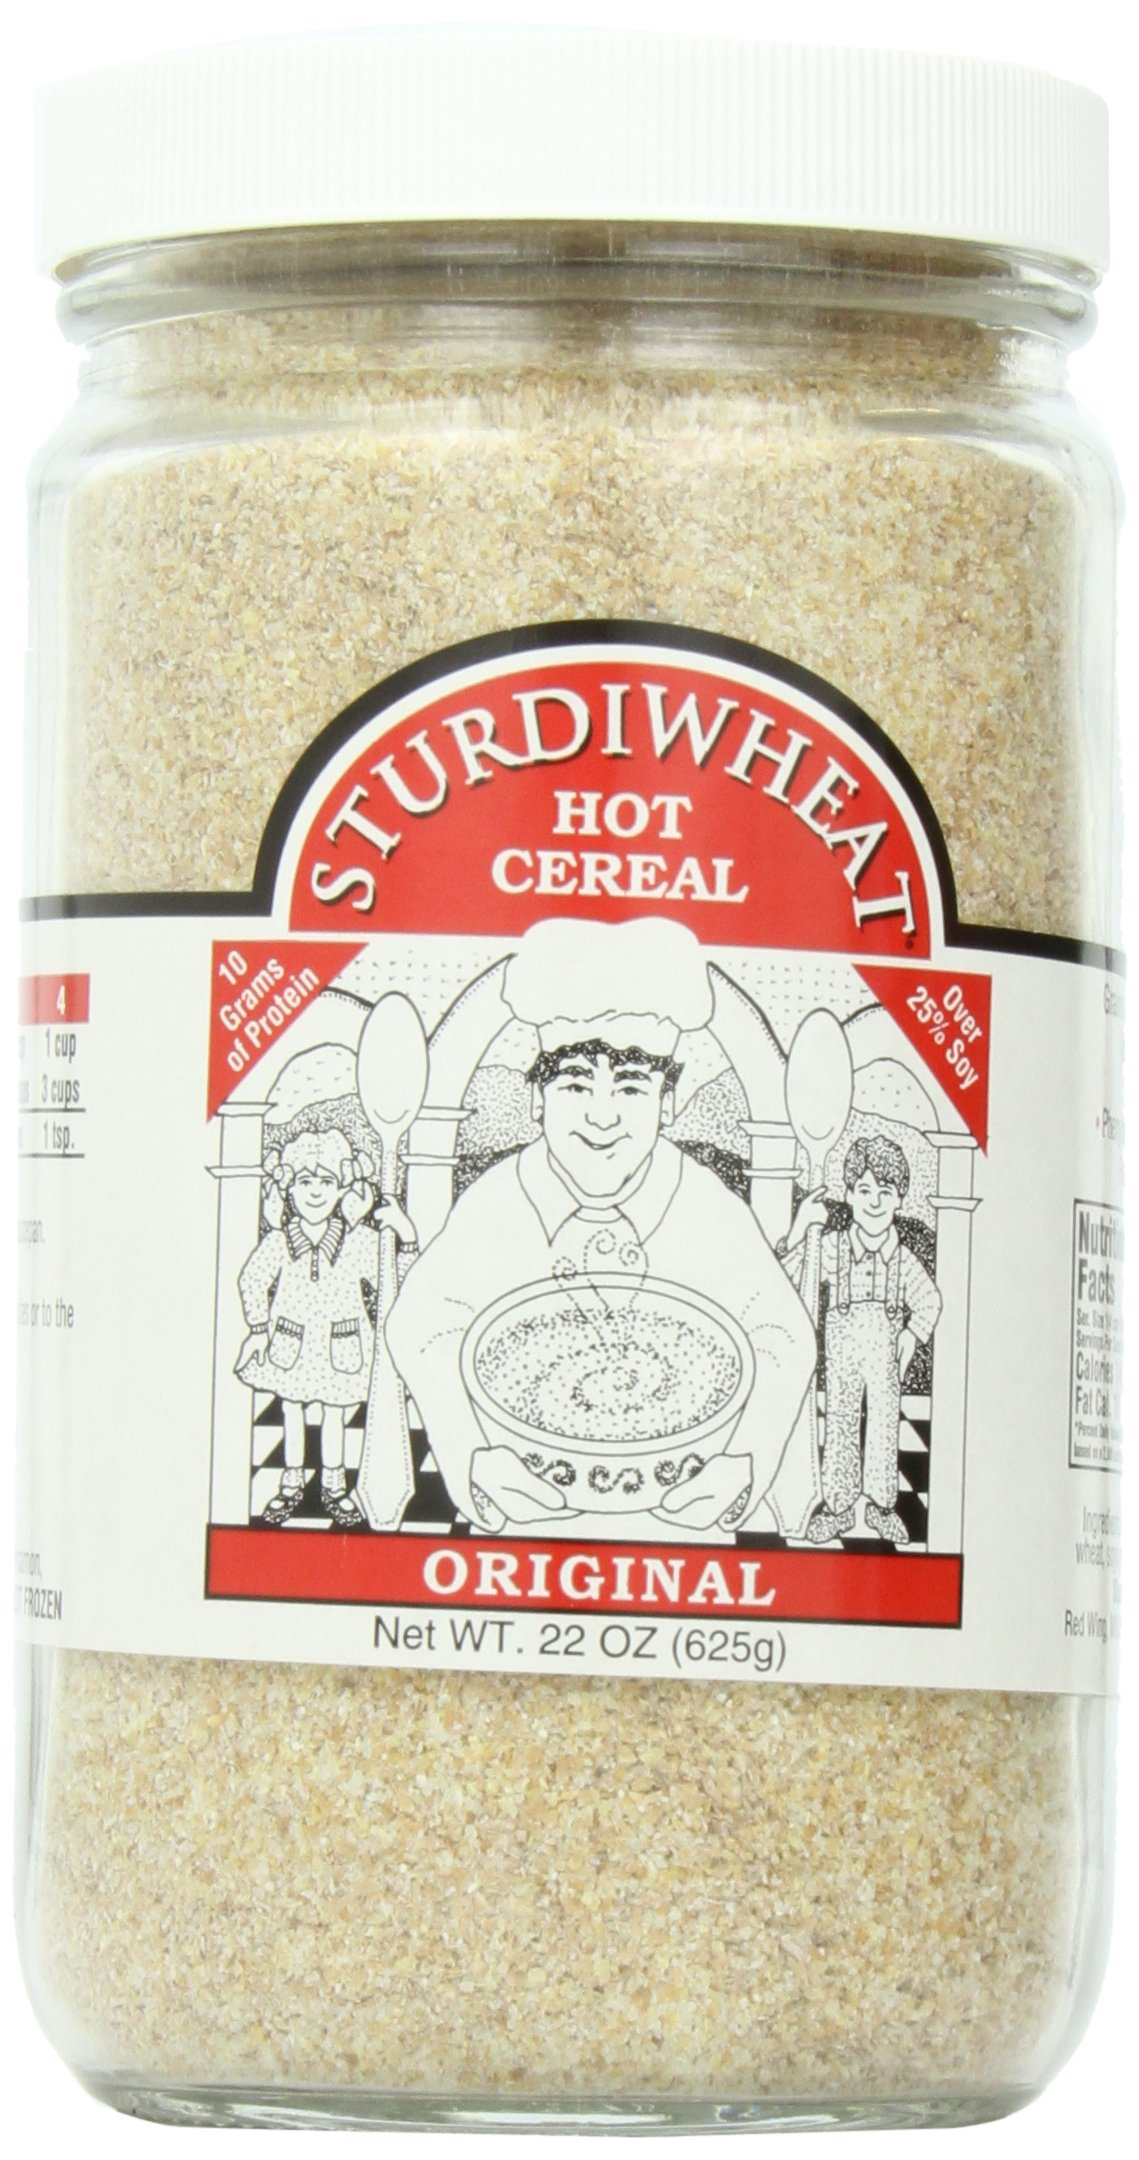 Sturdiwheat All Natural Hot Cereal, Original, 22-Ounce Container (Pack of 4)